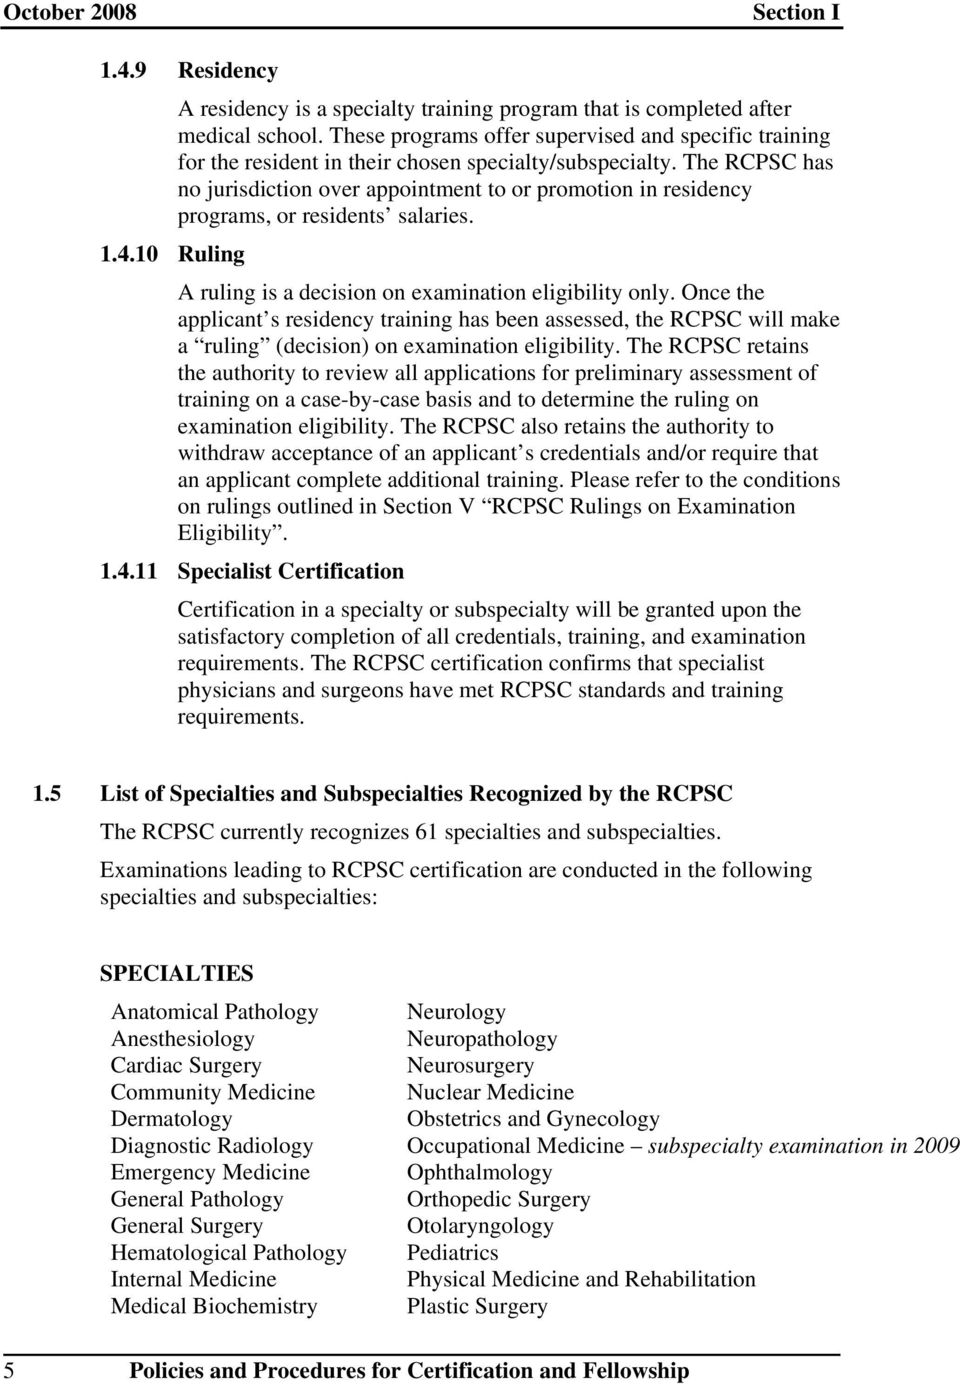 Policies and Procedures for Certification and Fellowship - PDF